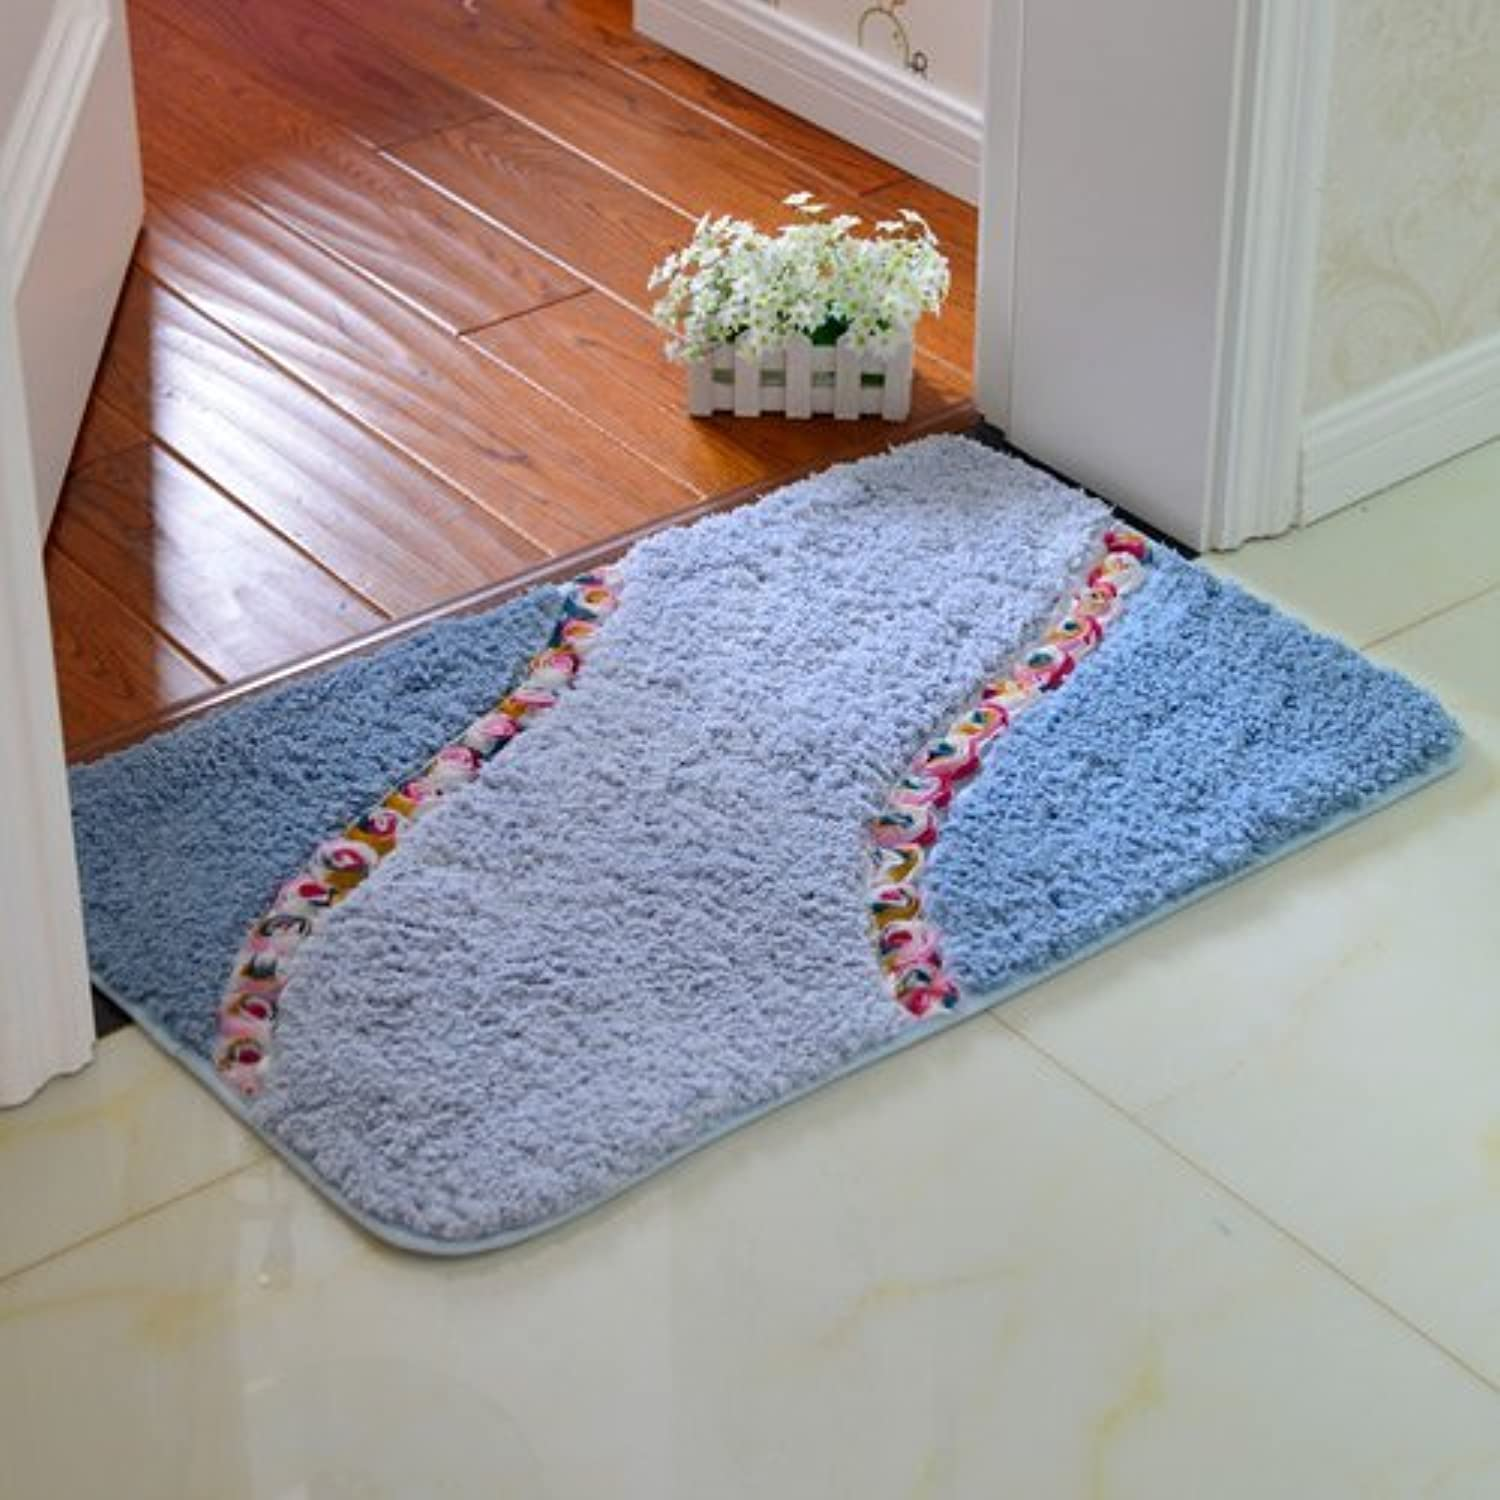 Super Soft Pastoral Mat Warm Flowers Door Into The Door Mat Bedroom Bathroom Anti-Skid Absorbent Pad Cushions Soft and Comfortable (color    4, Size   50  80cm)